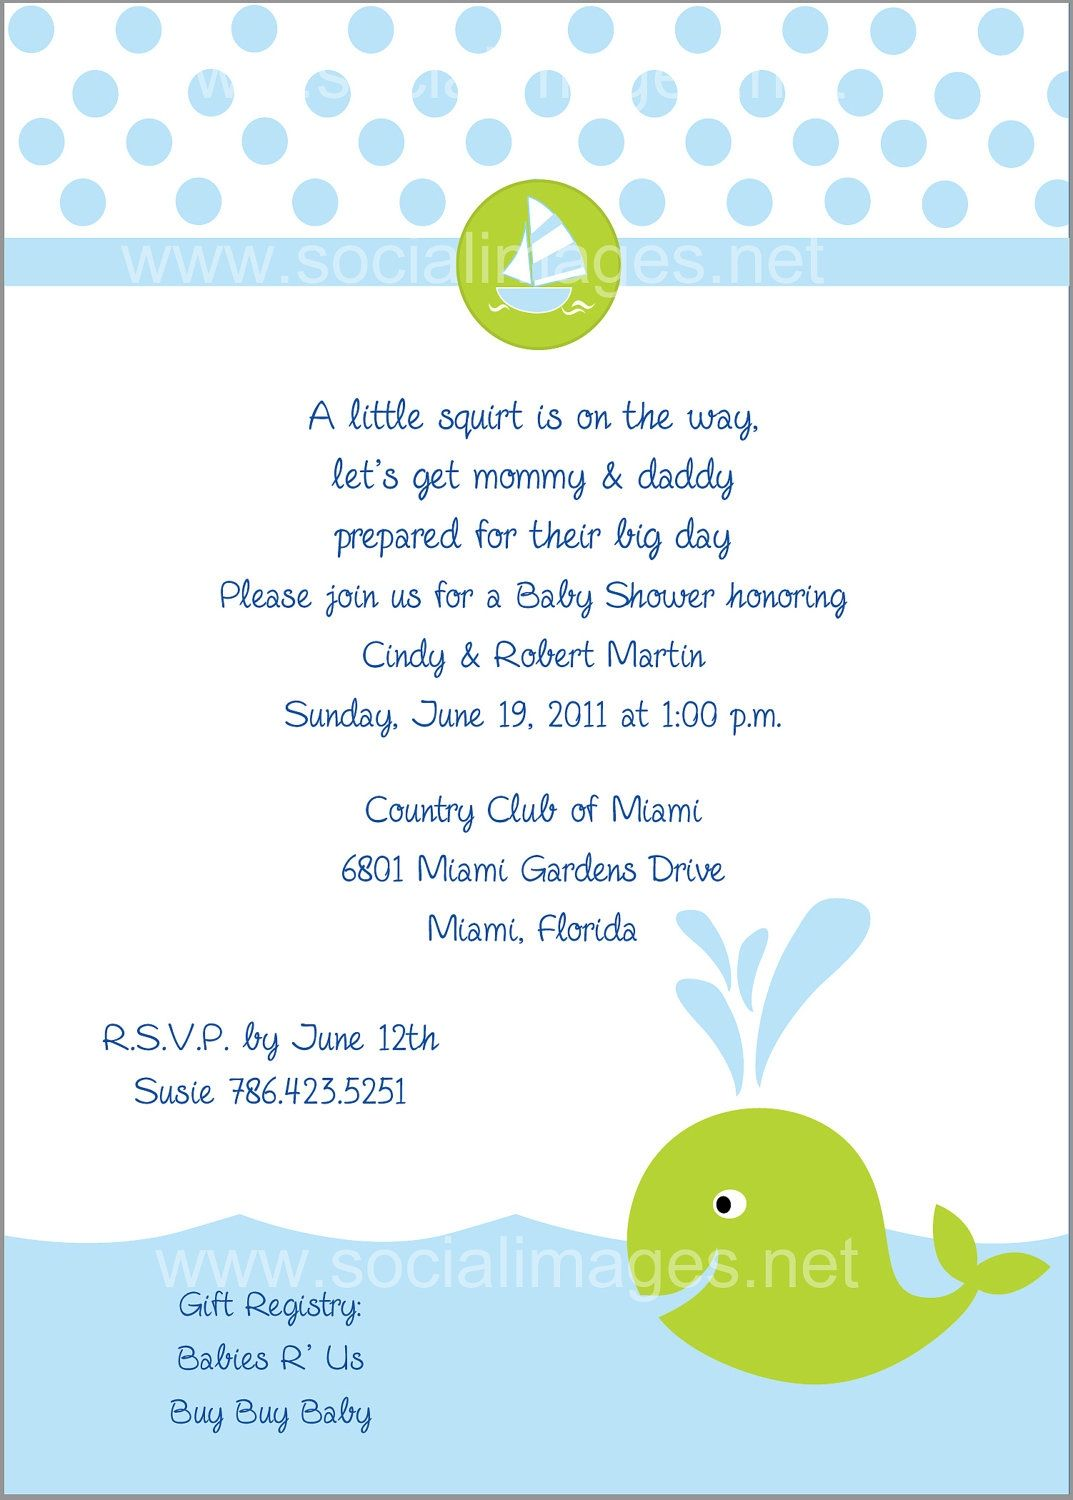 Baby Registry Message To Family And Friends : registry, message, family, friends, Shower, Registry, Message, Viewer